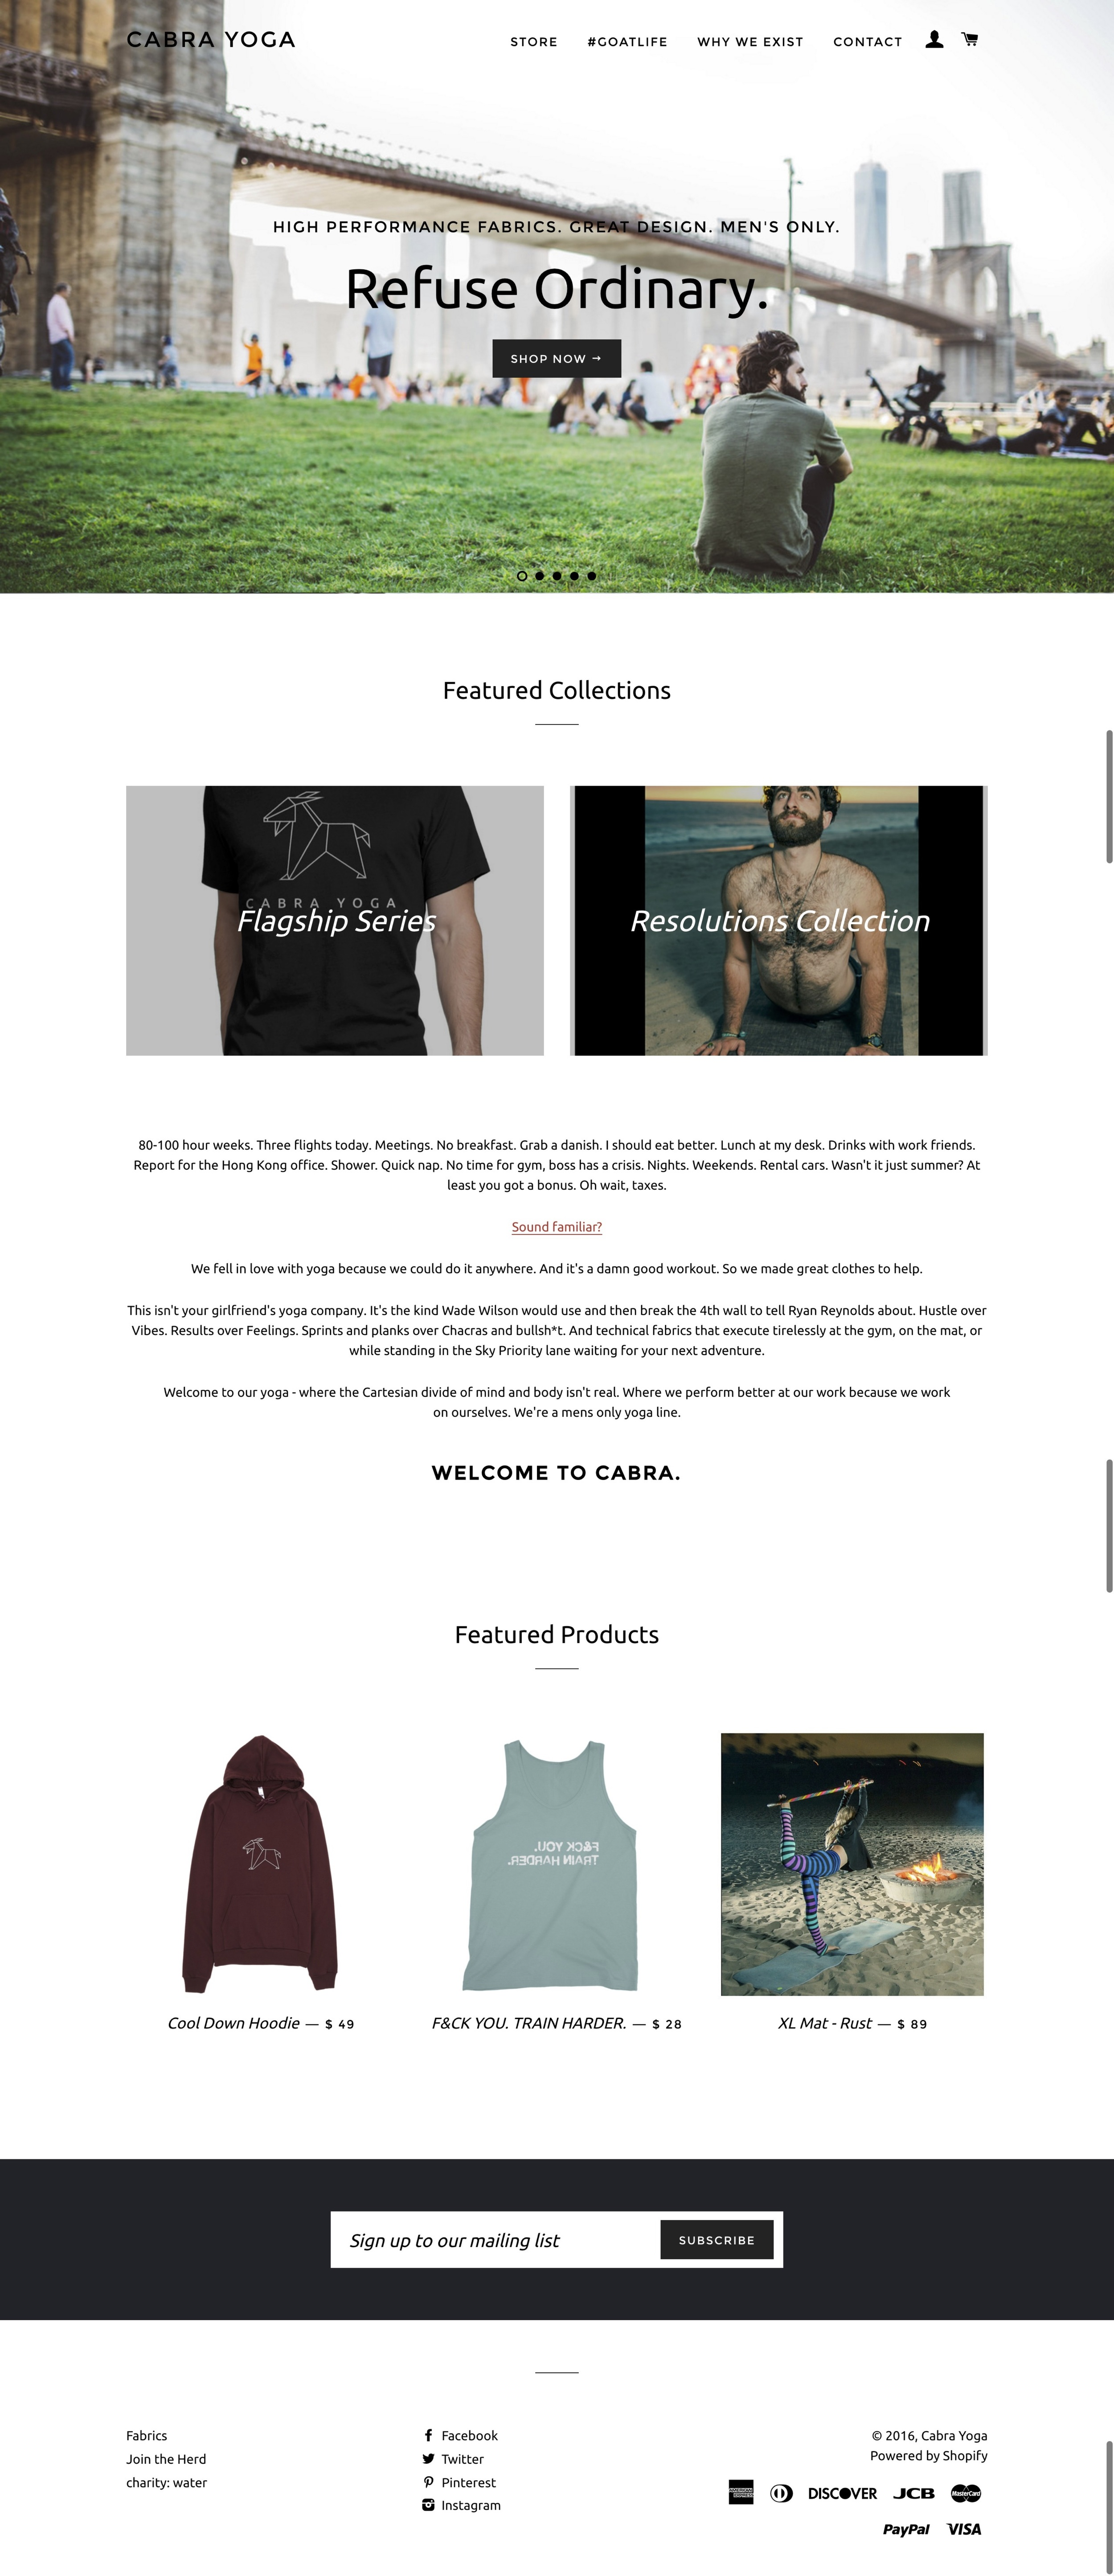 A drop-shipped men's only yoga apparel line I created from scratch. Never got traction but still happy with my designs.